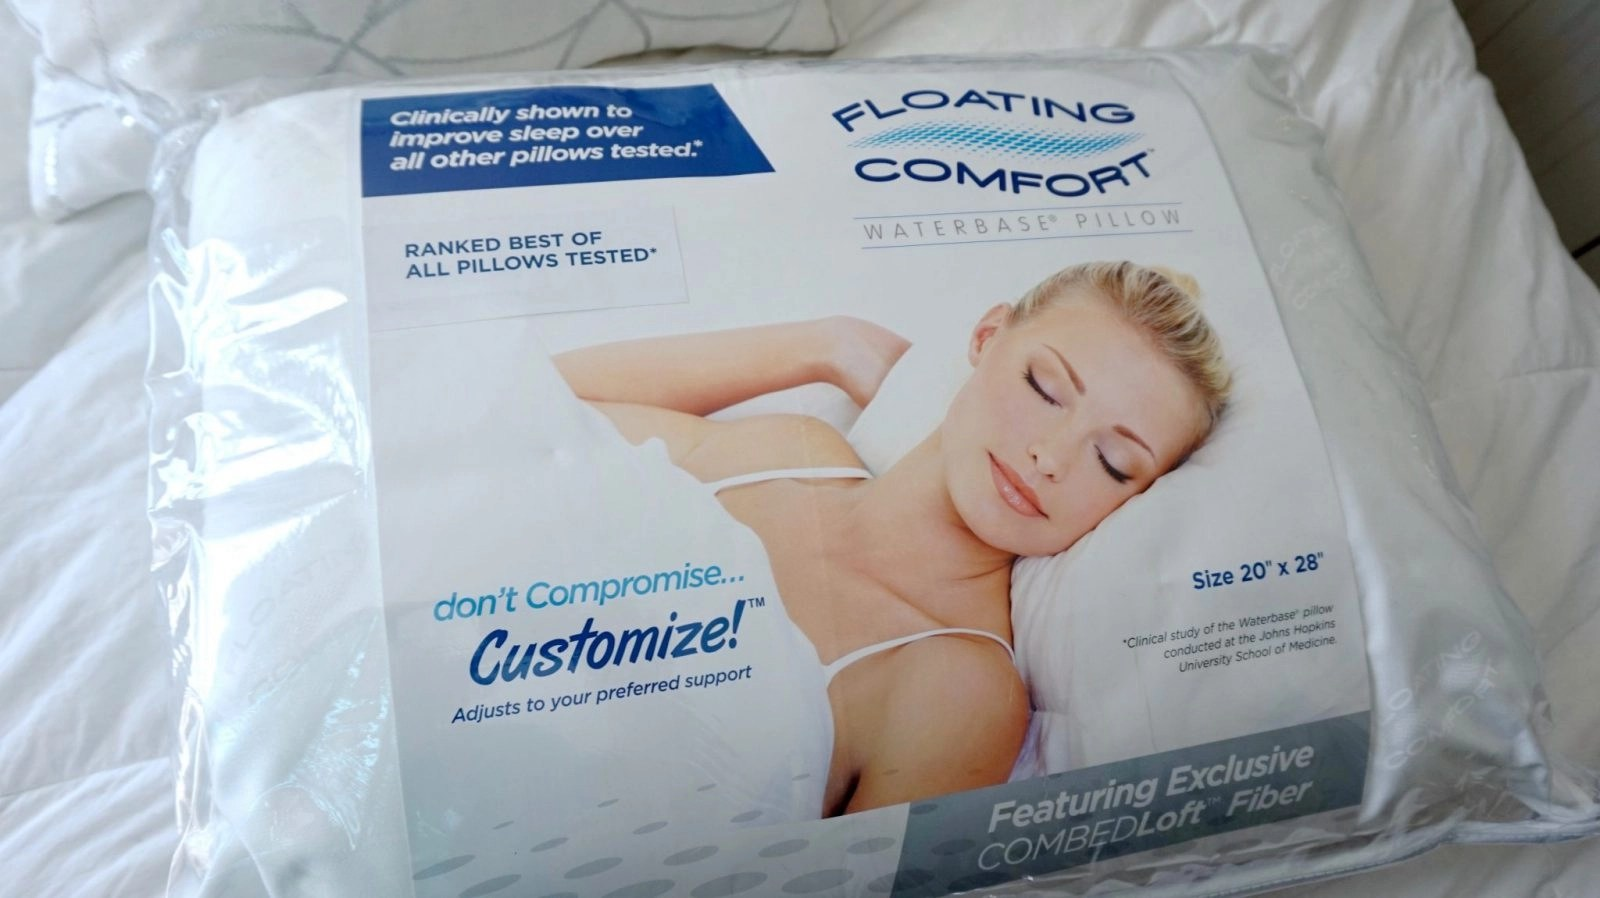 Floating Comfort Front of Packaging